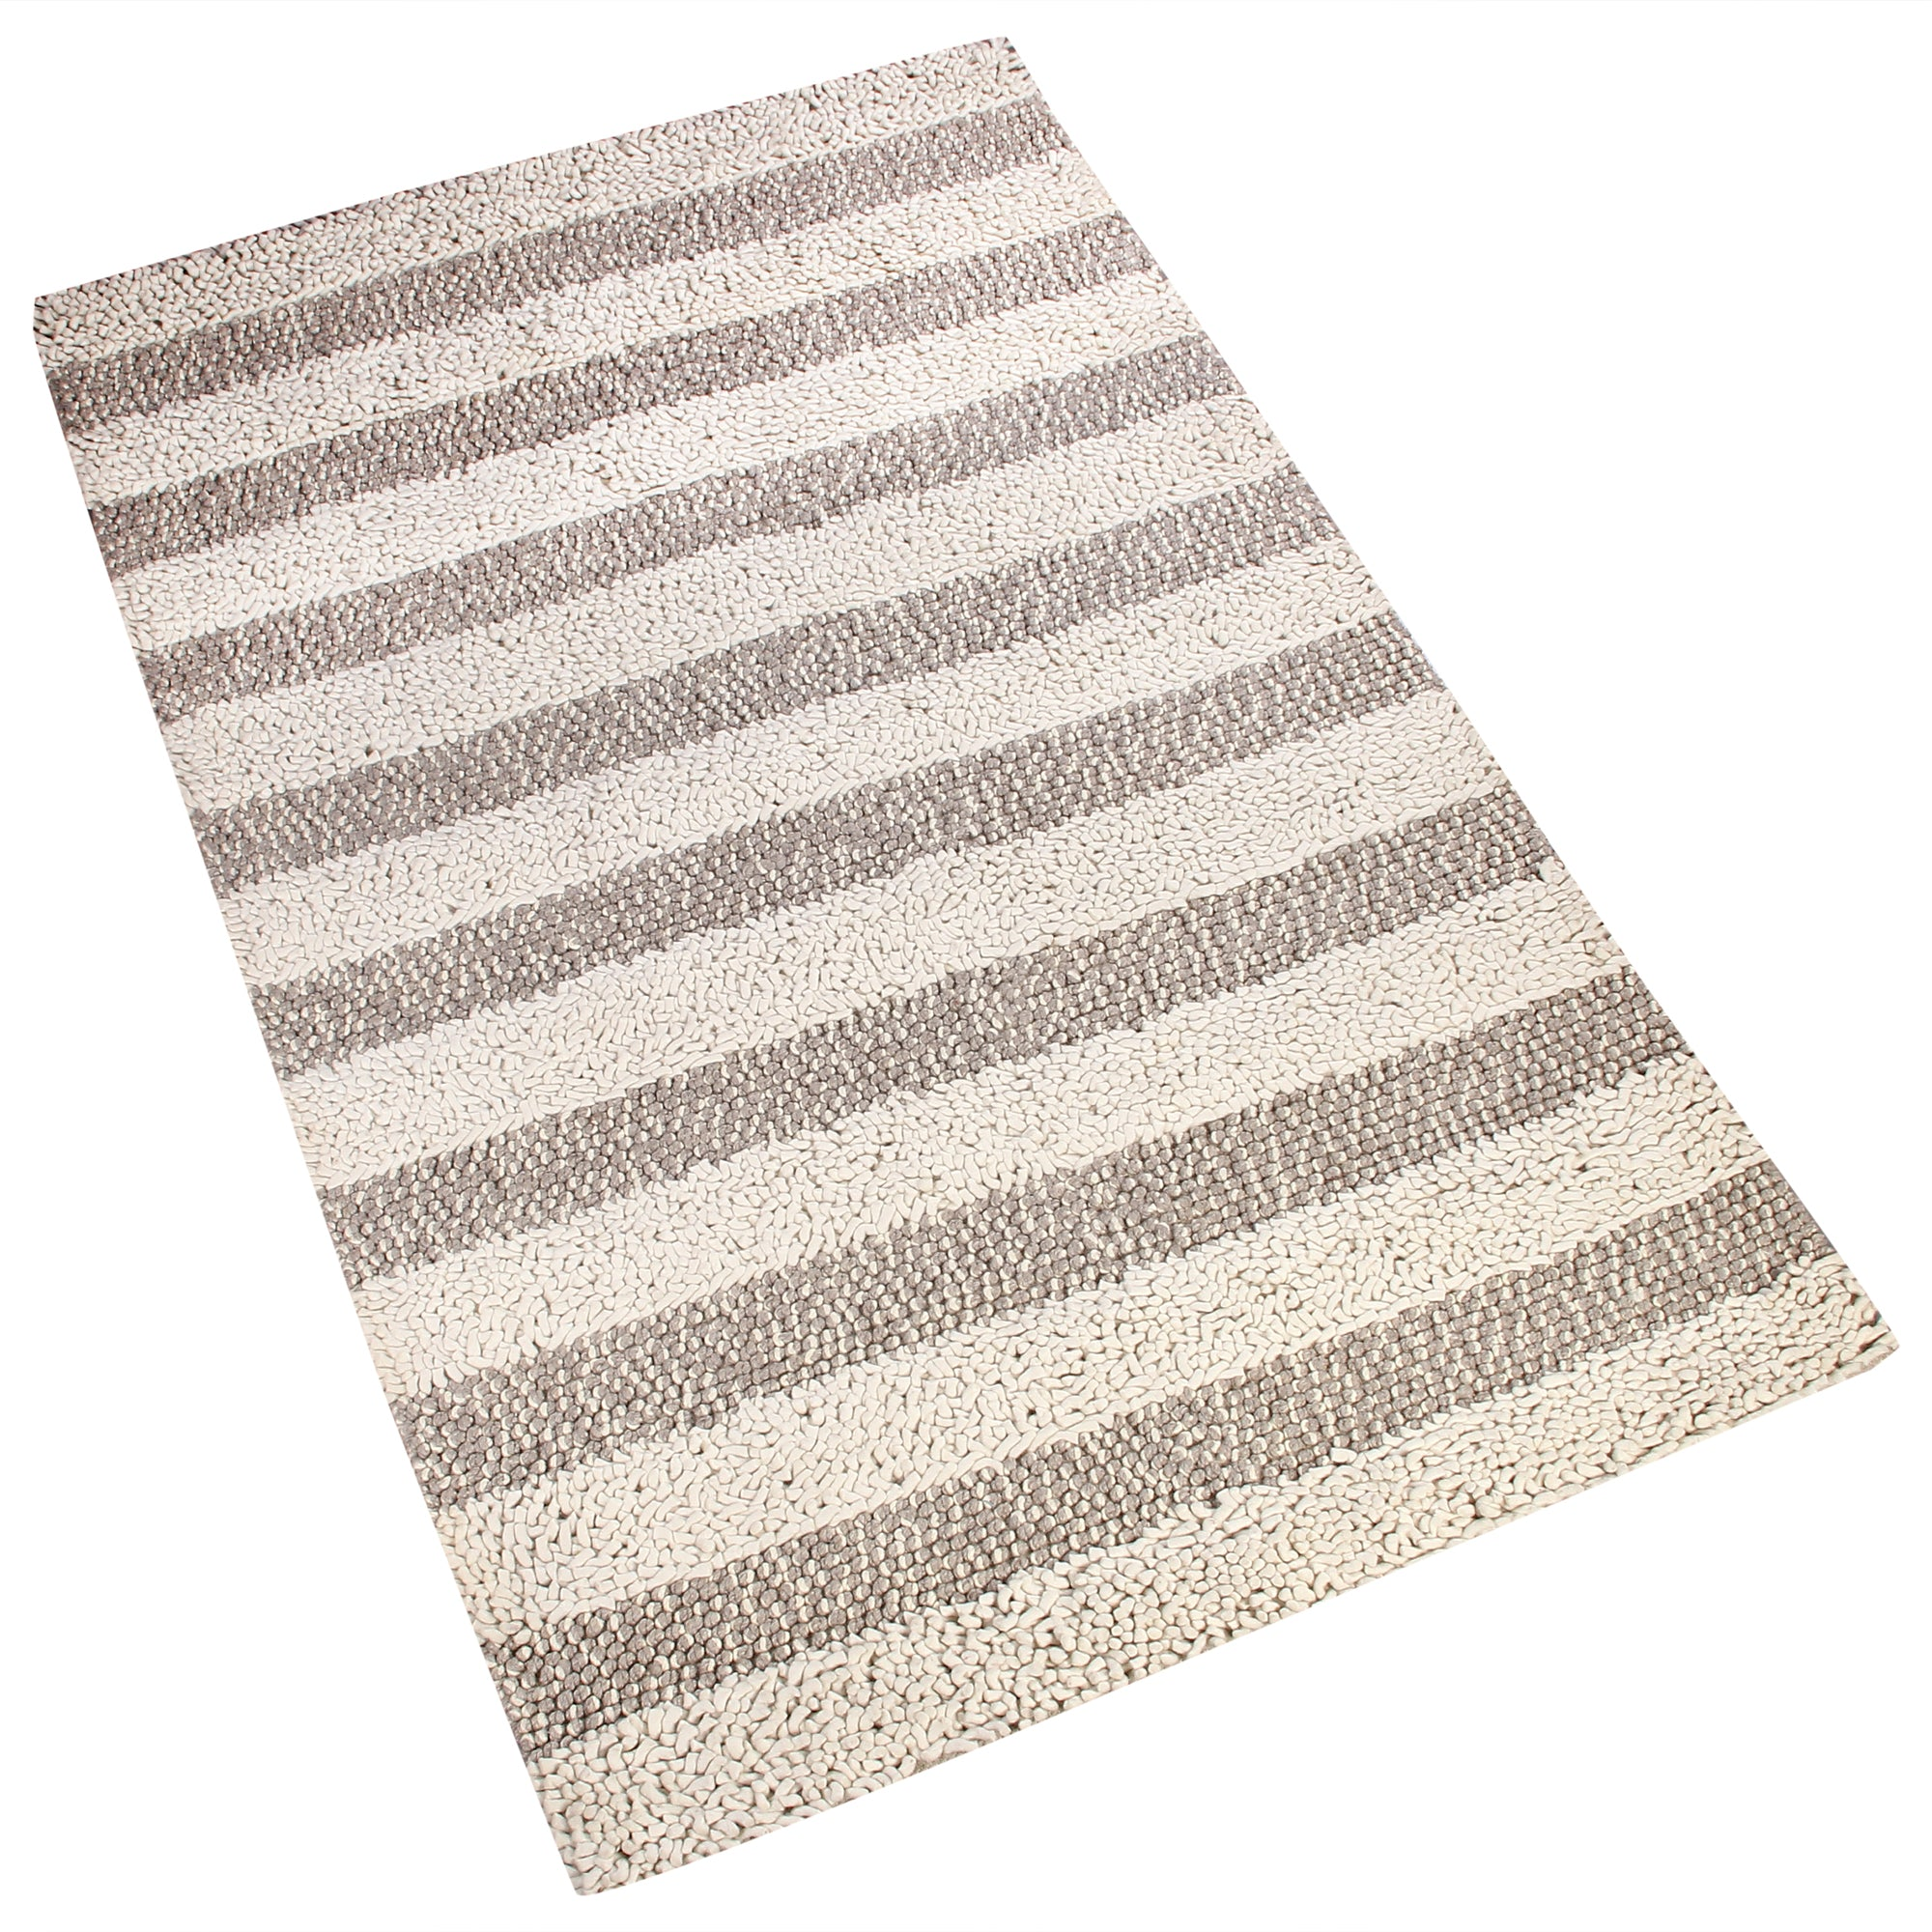 BEIGE BROWN BRAIDED SHAGGY HORIZONTAL DESIGN HAND TUFTED RUG